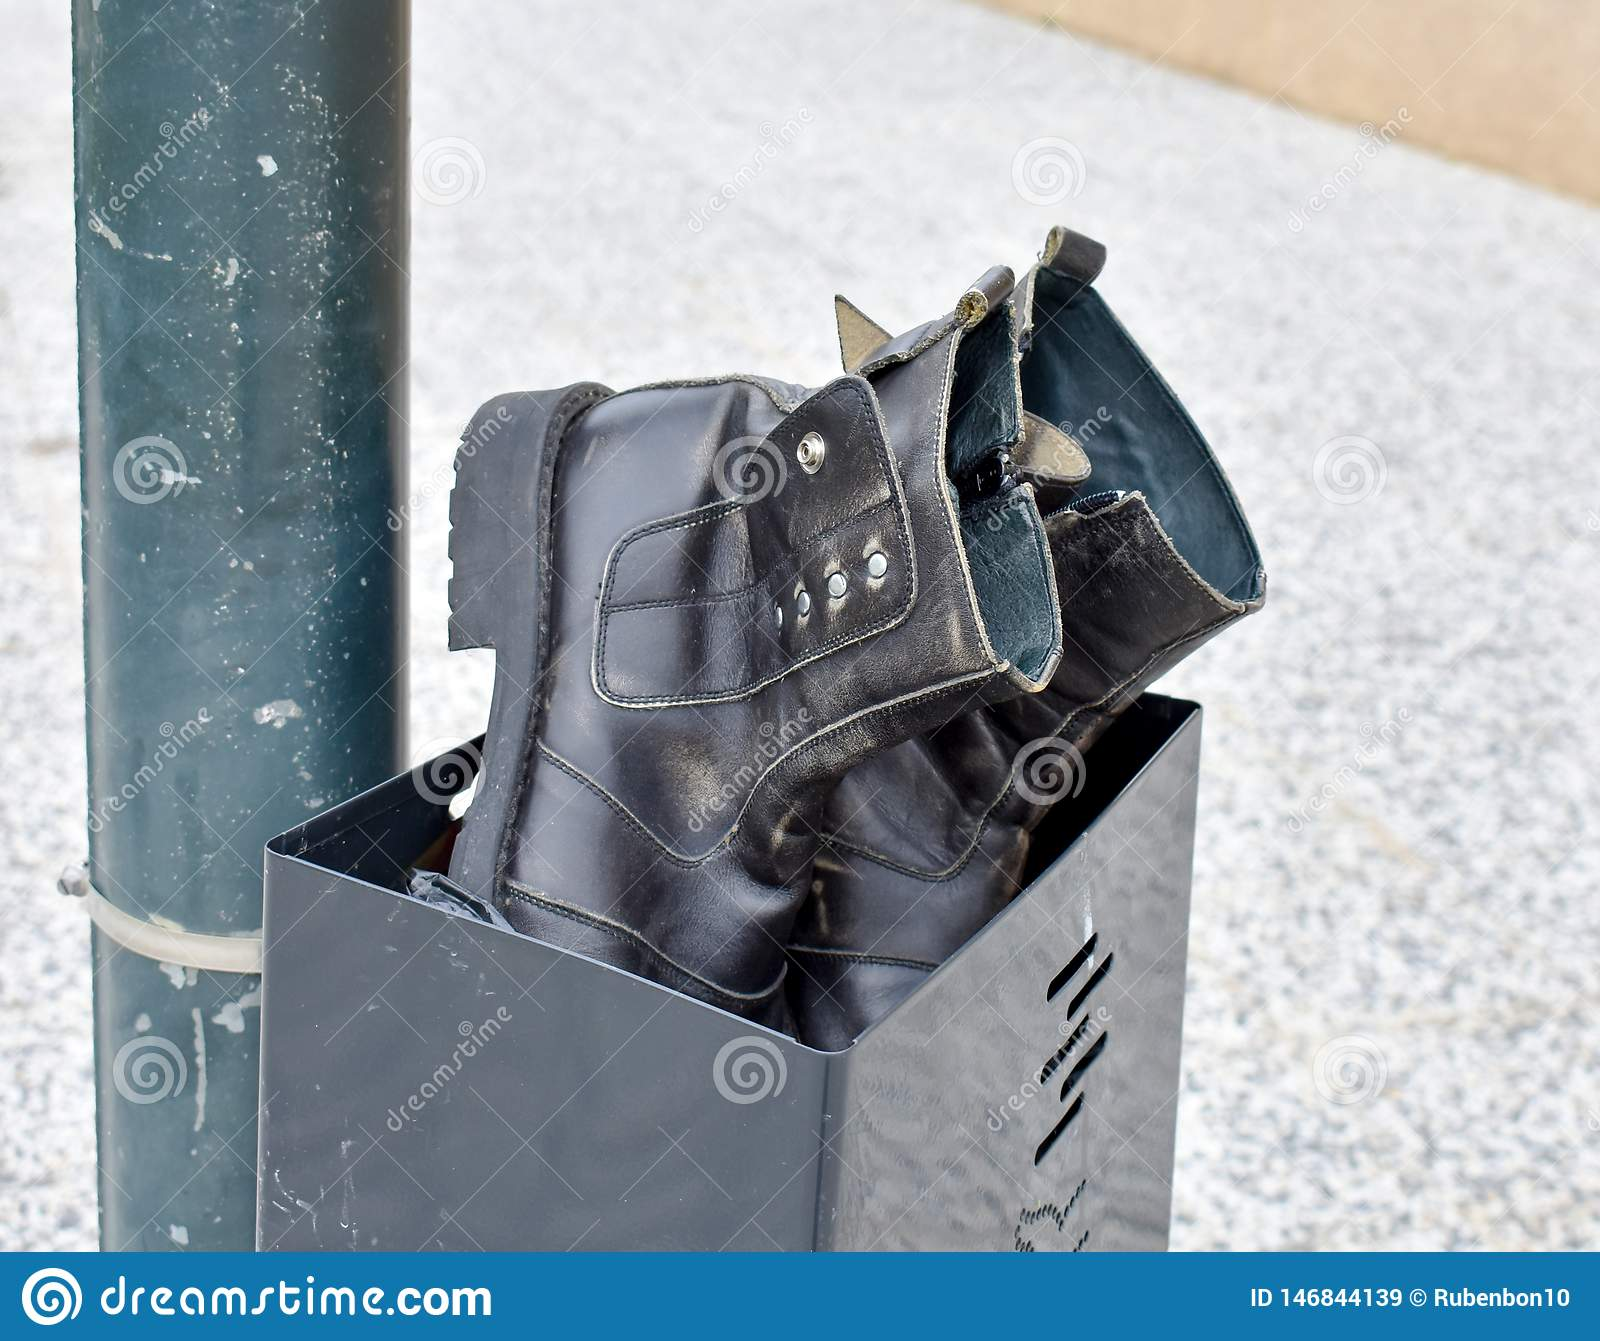 a pair of used black boots made in black leather abandoned in a black bin. Boots and bin at a post in the sidewalk of the street.